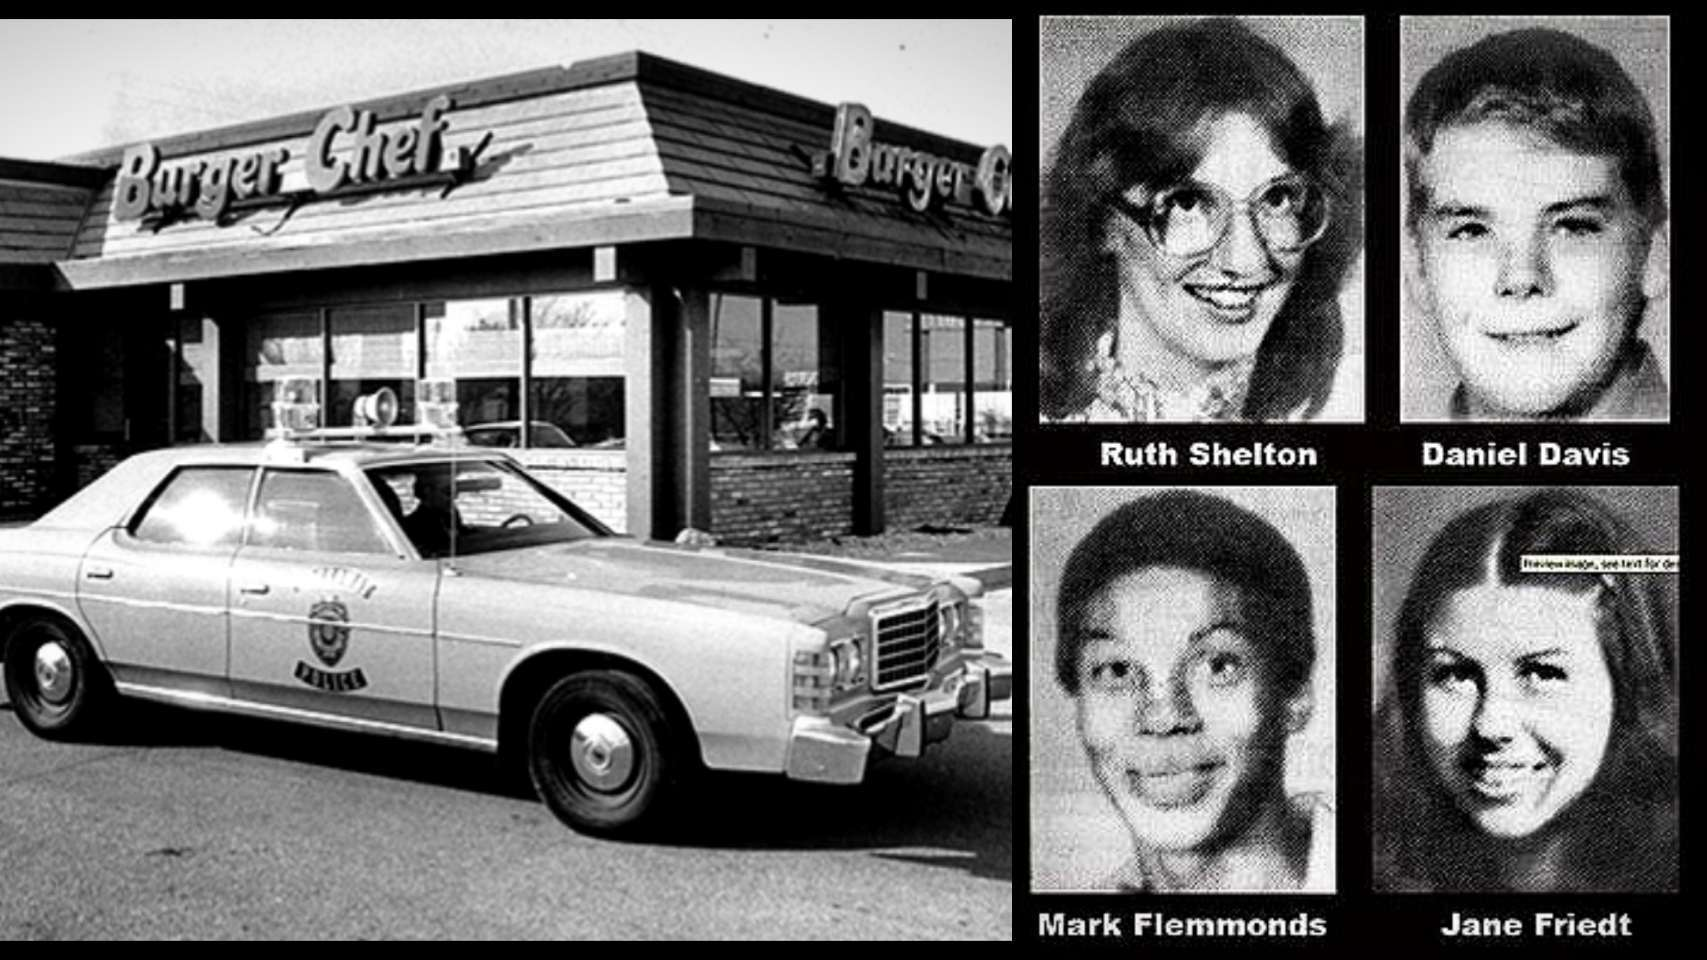 The Burger Chef Murders – Speedway, Indiana